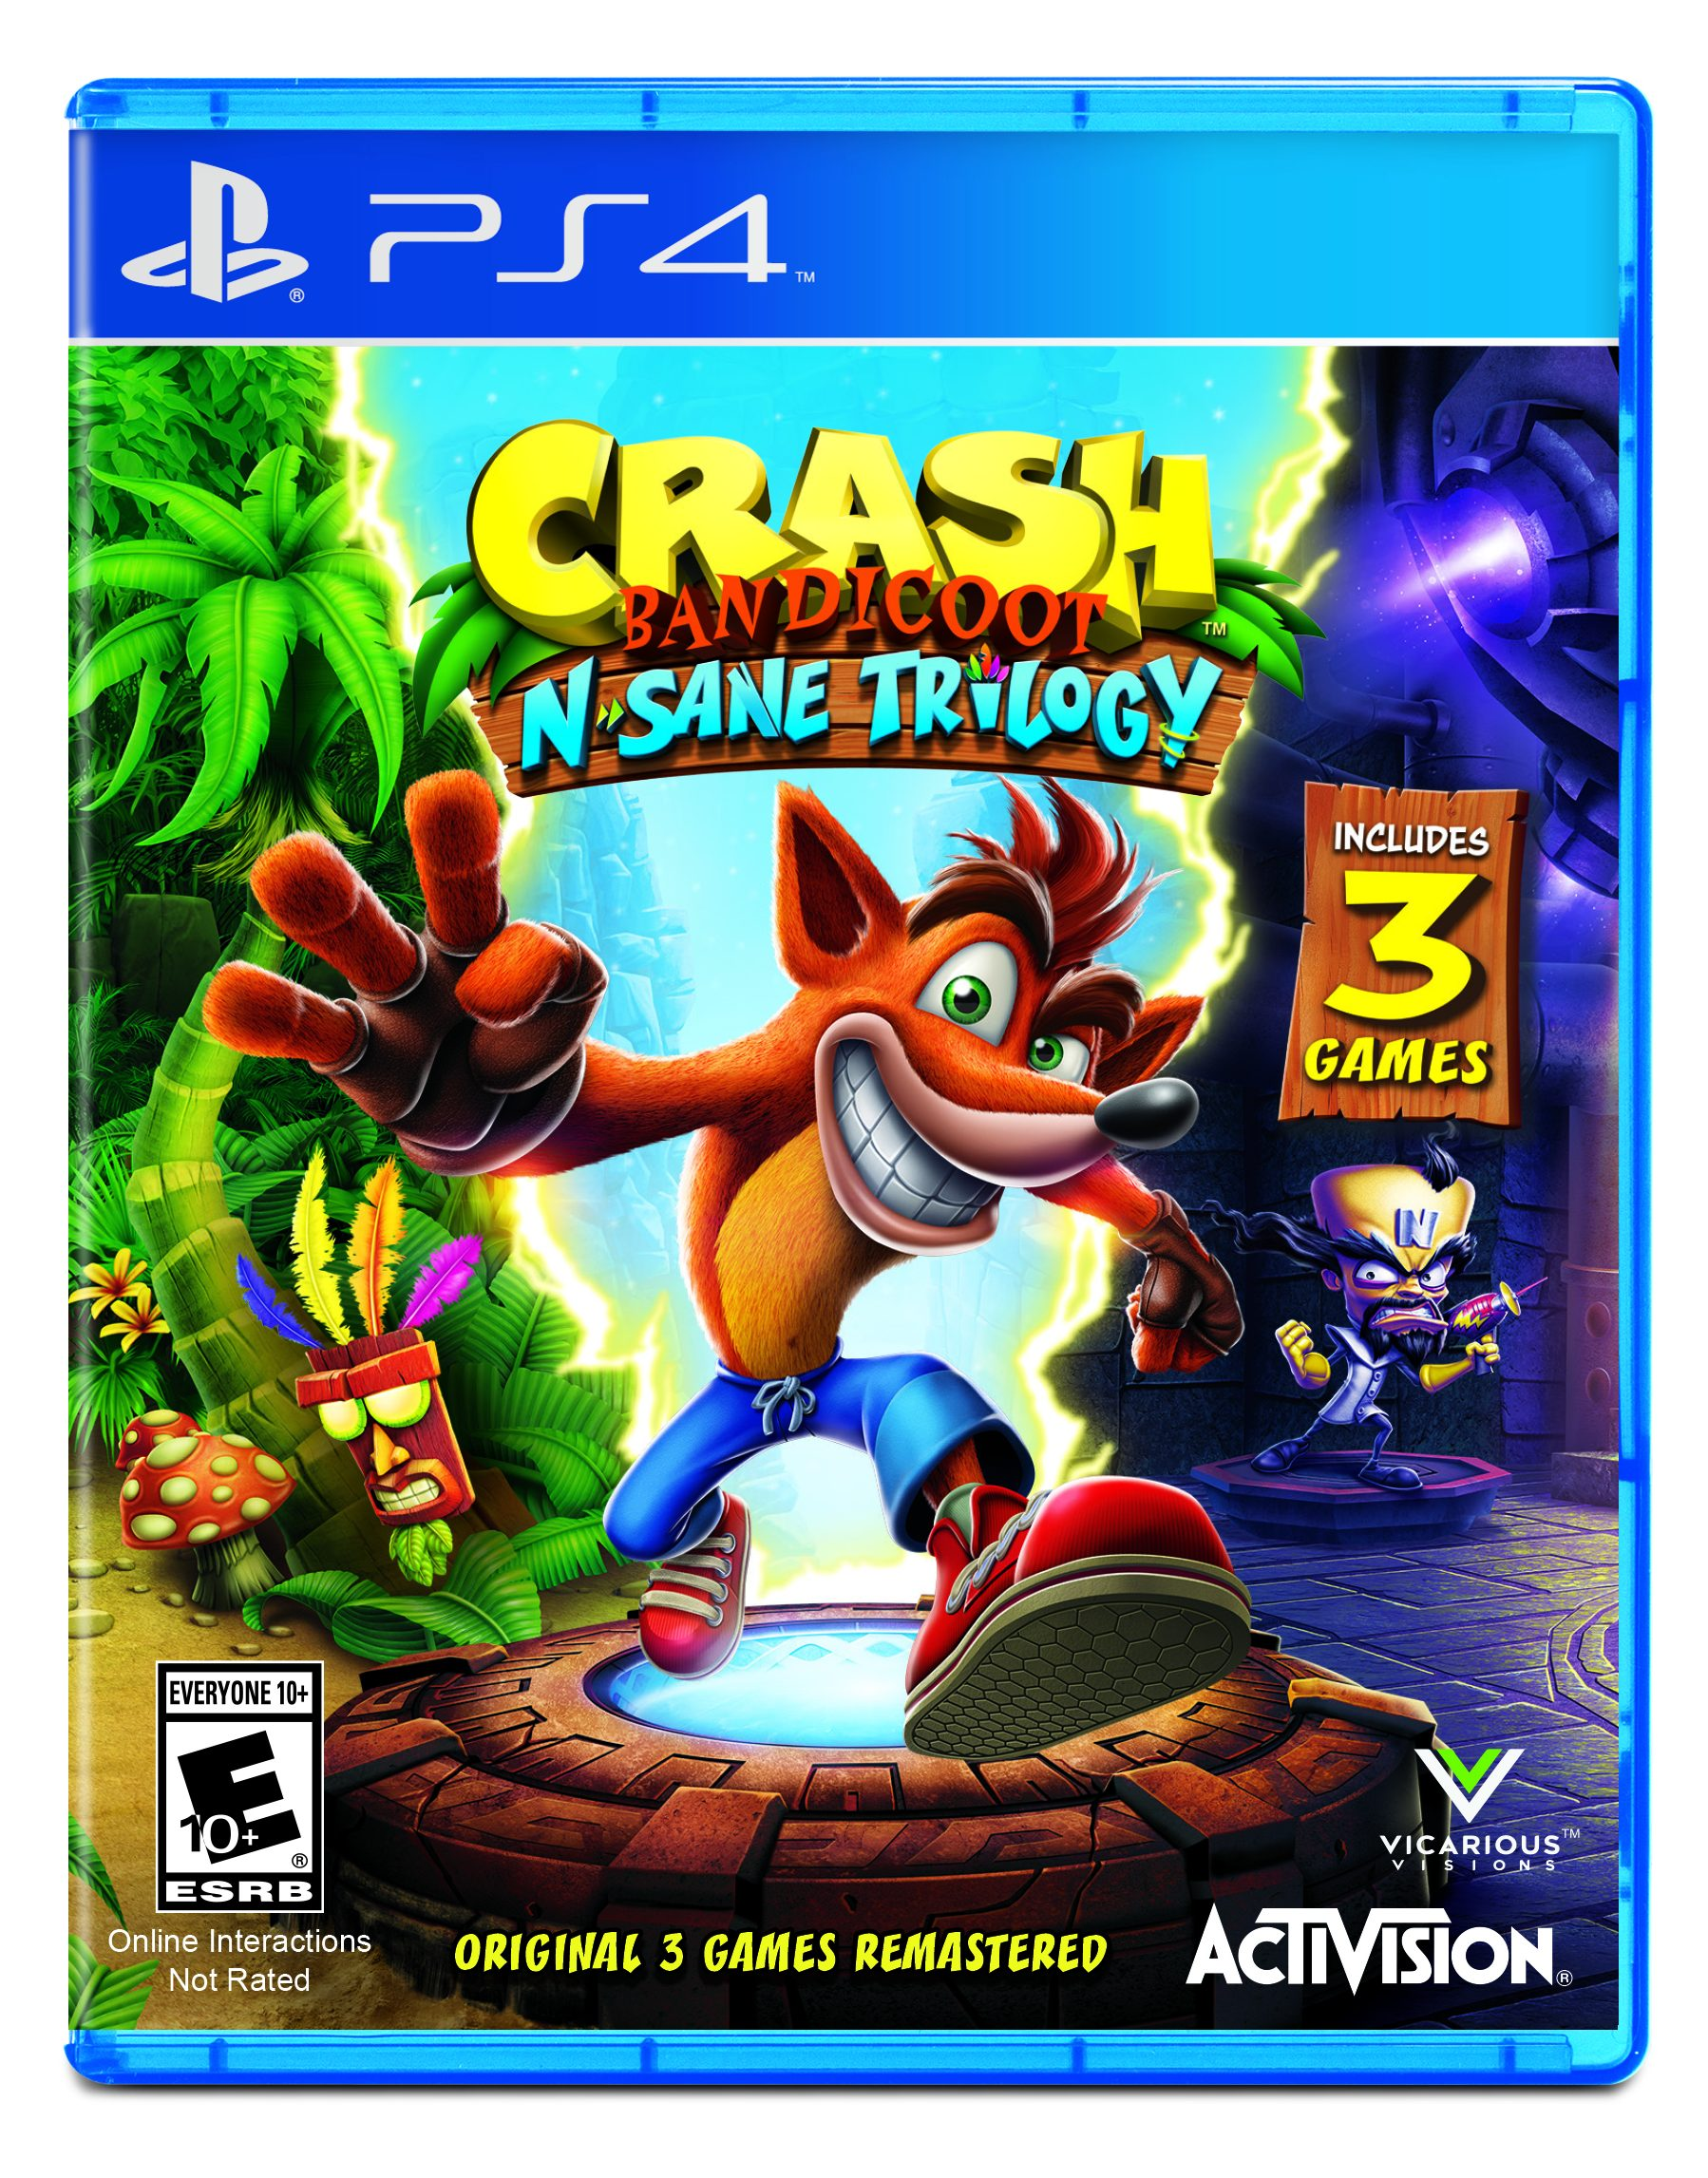 Activision Crash Bandicoot Video Games #activision #videogames #technology #tech #holidaygiftguide #ad